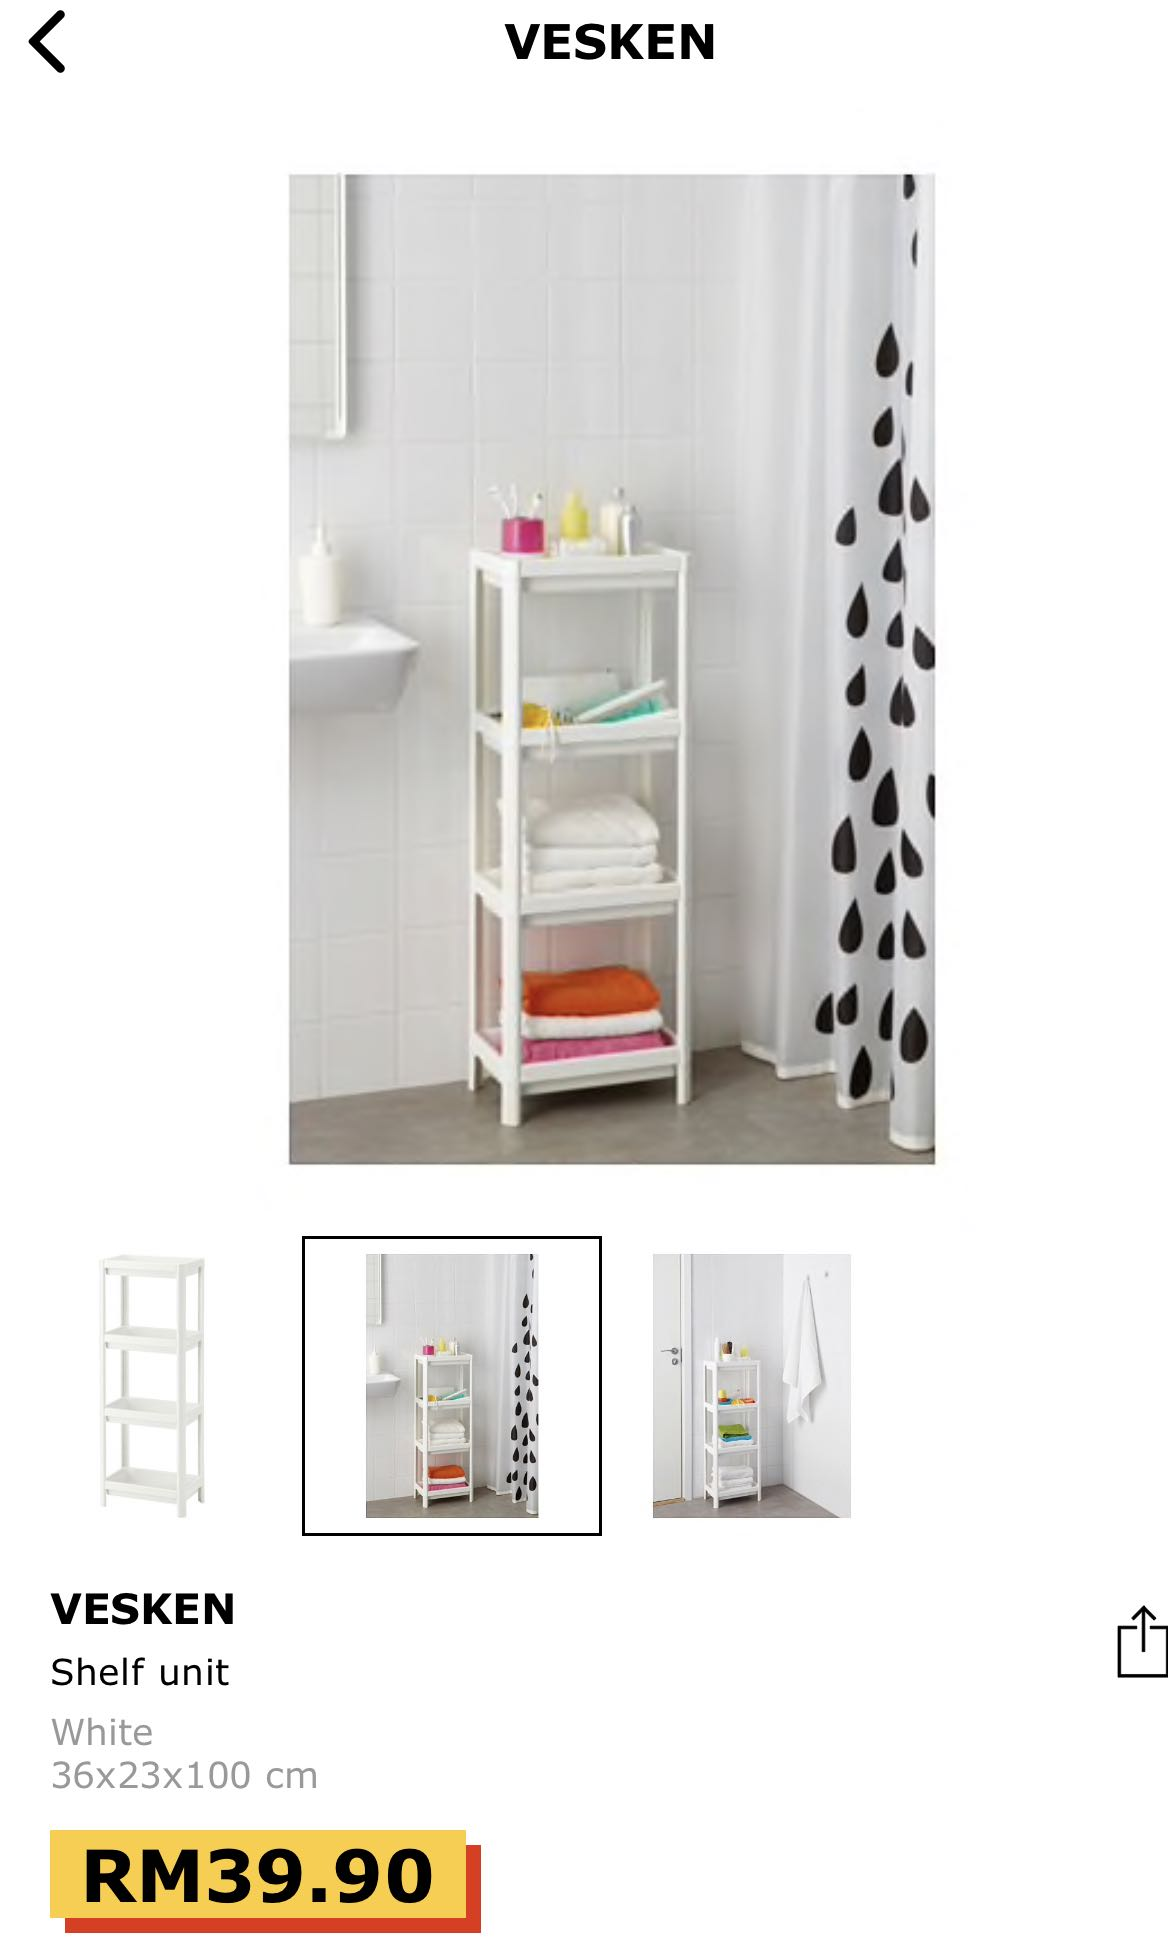 Ikea Vesken New Ikea Vesken Shelf Unit